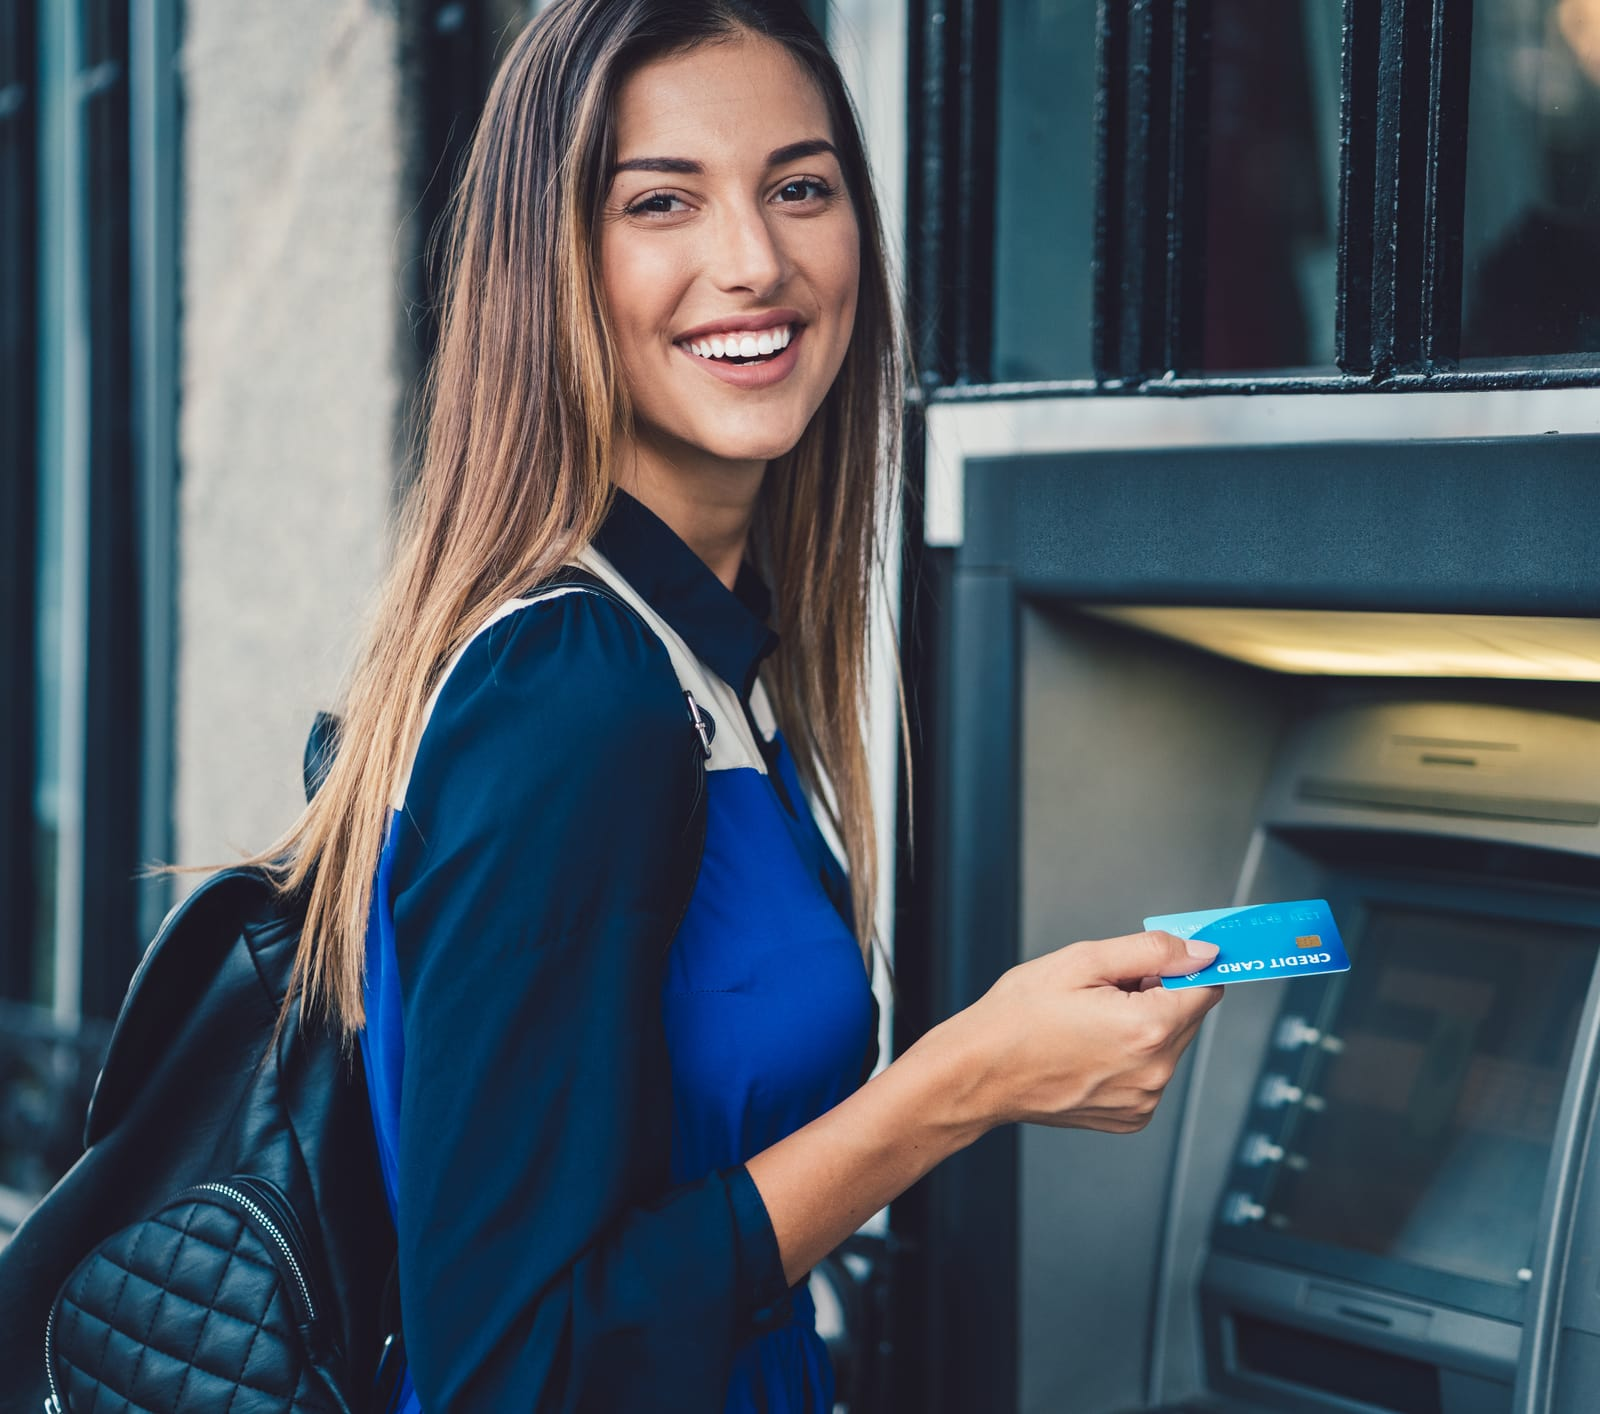 ATM Withdrawal & Daily Debit Purchase Limits: What Are They